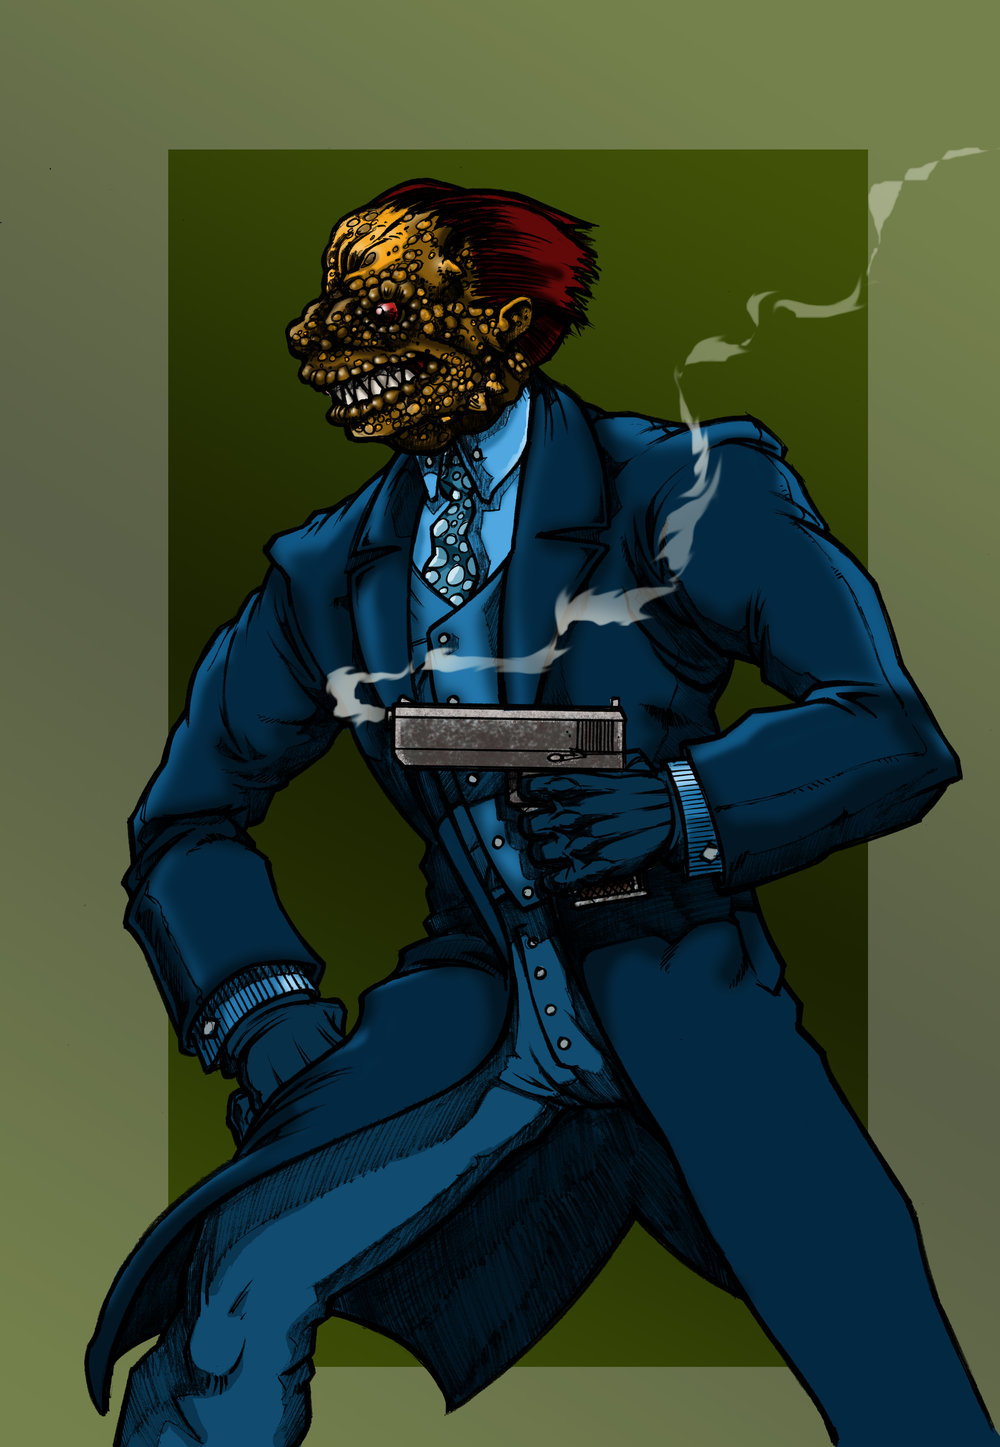 Gila Sonora. - A dapper and well dressed gunsel for the local Mexican gang, Gila packs a .45 and a poisonous bite. He soon becomes ambitious...